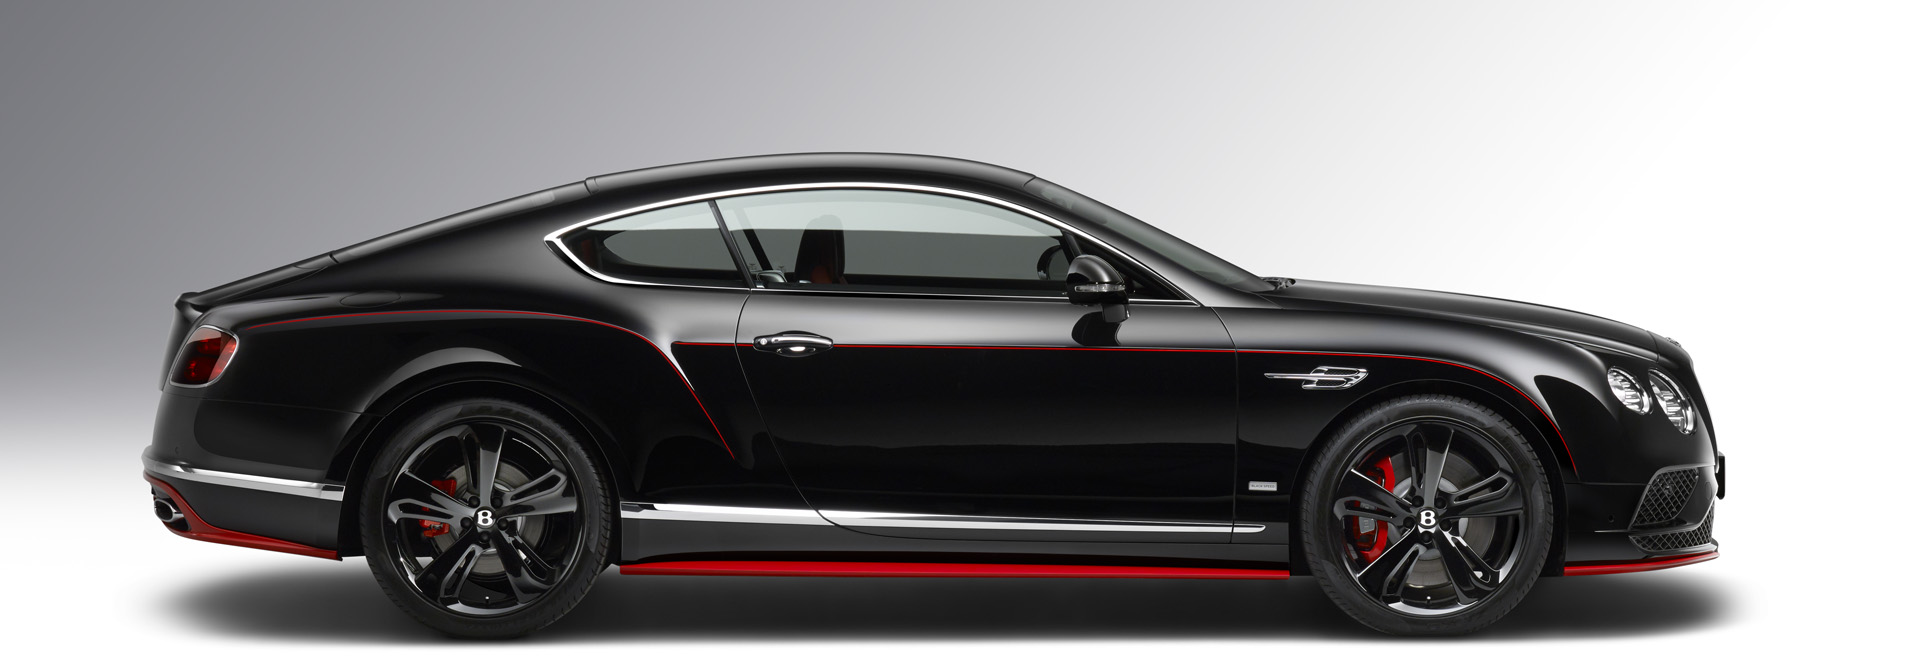 mulliner_limited_ed_black_speed